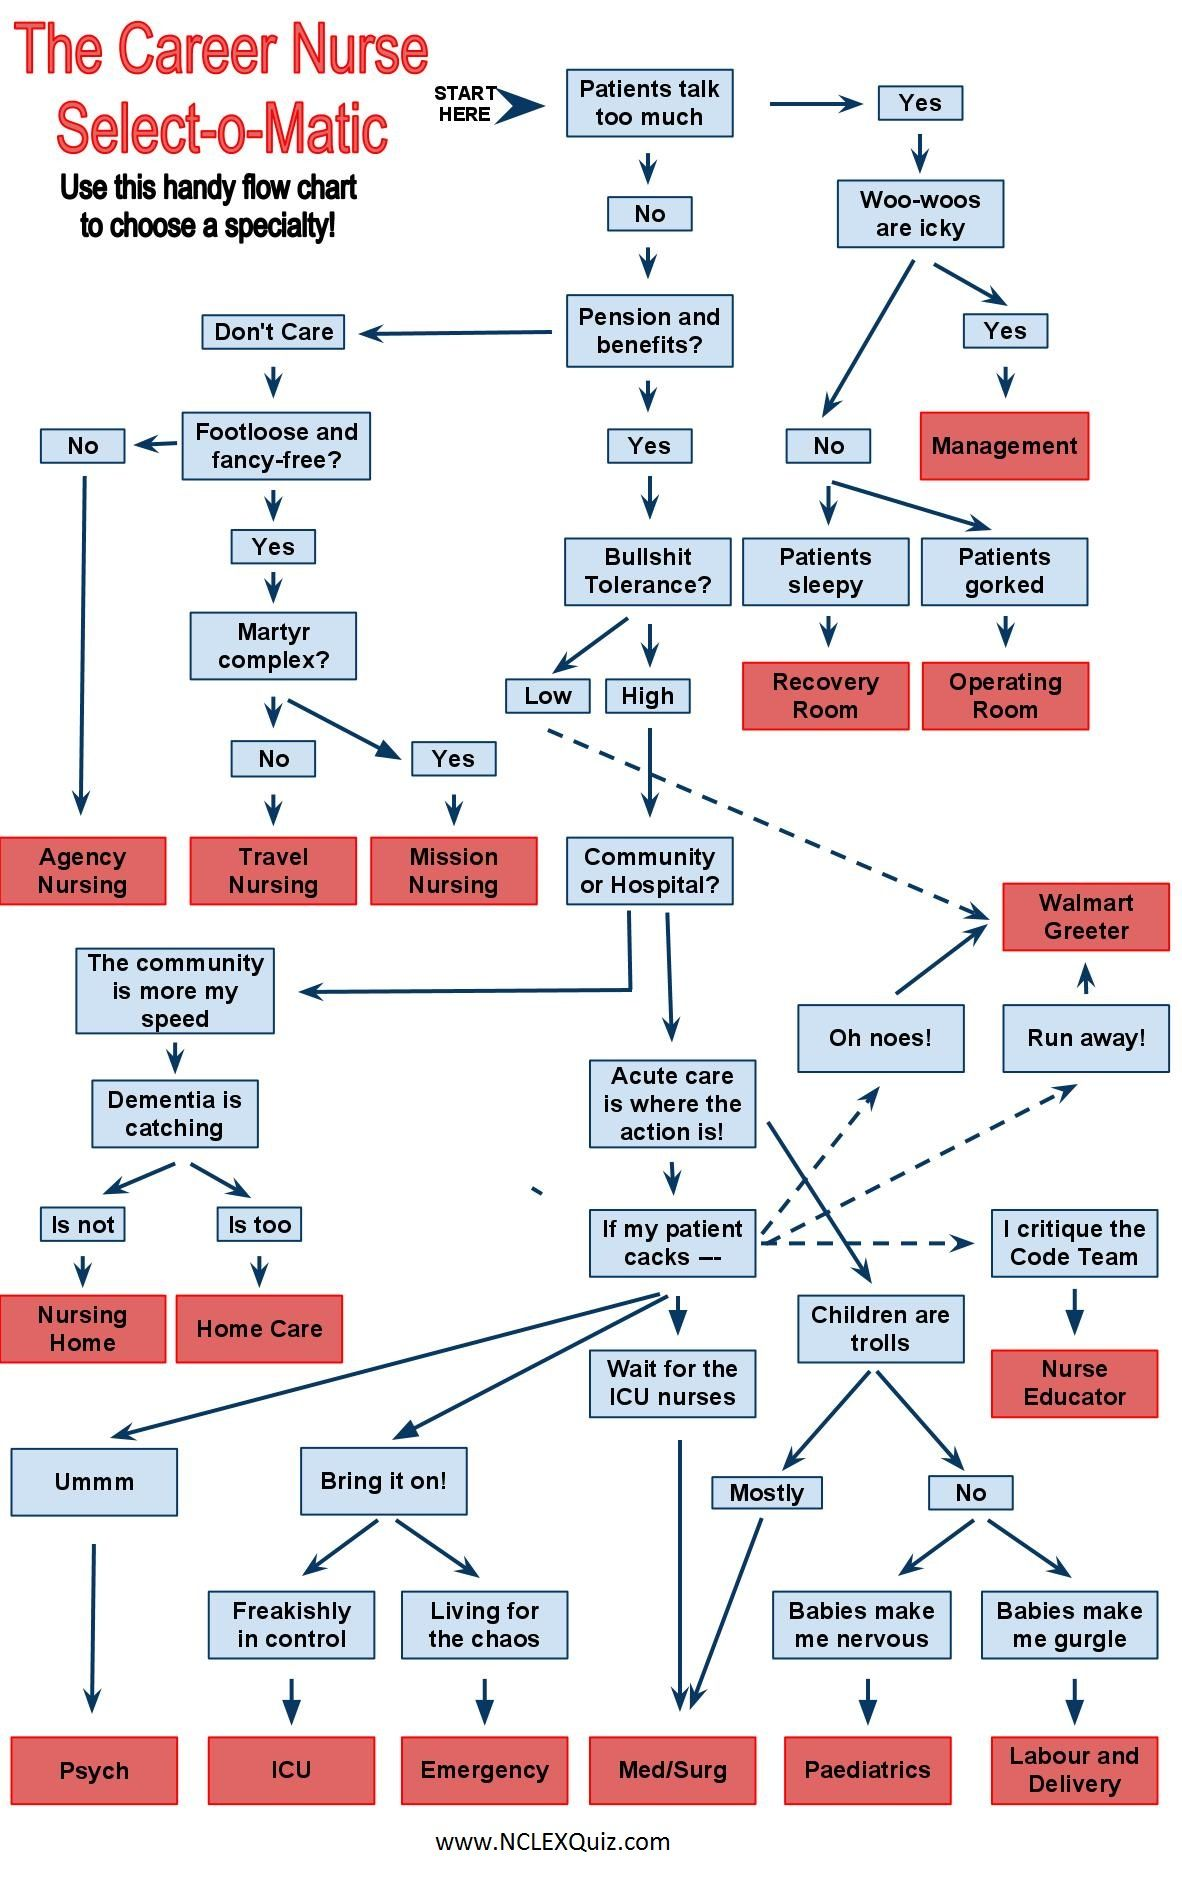 The World's Most Sophisticated Algorithm for Choosing a